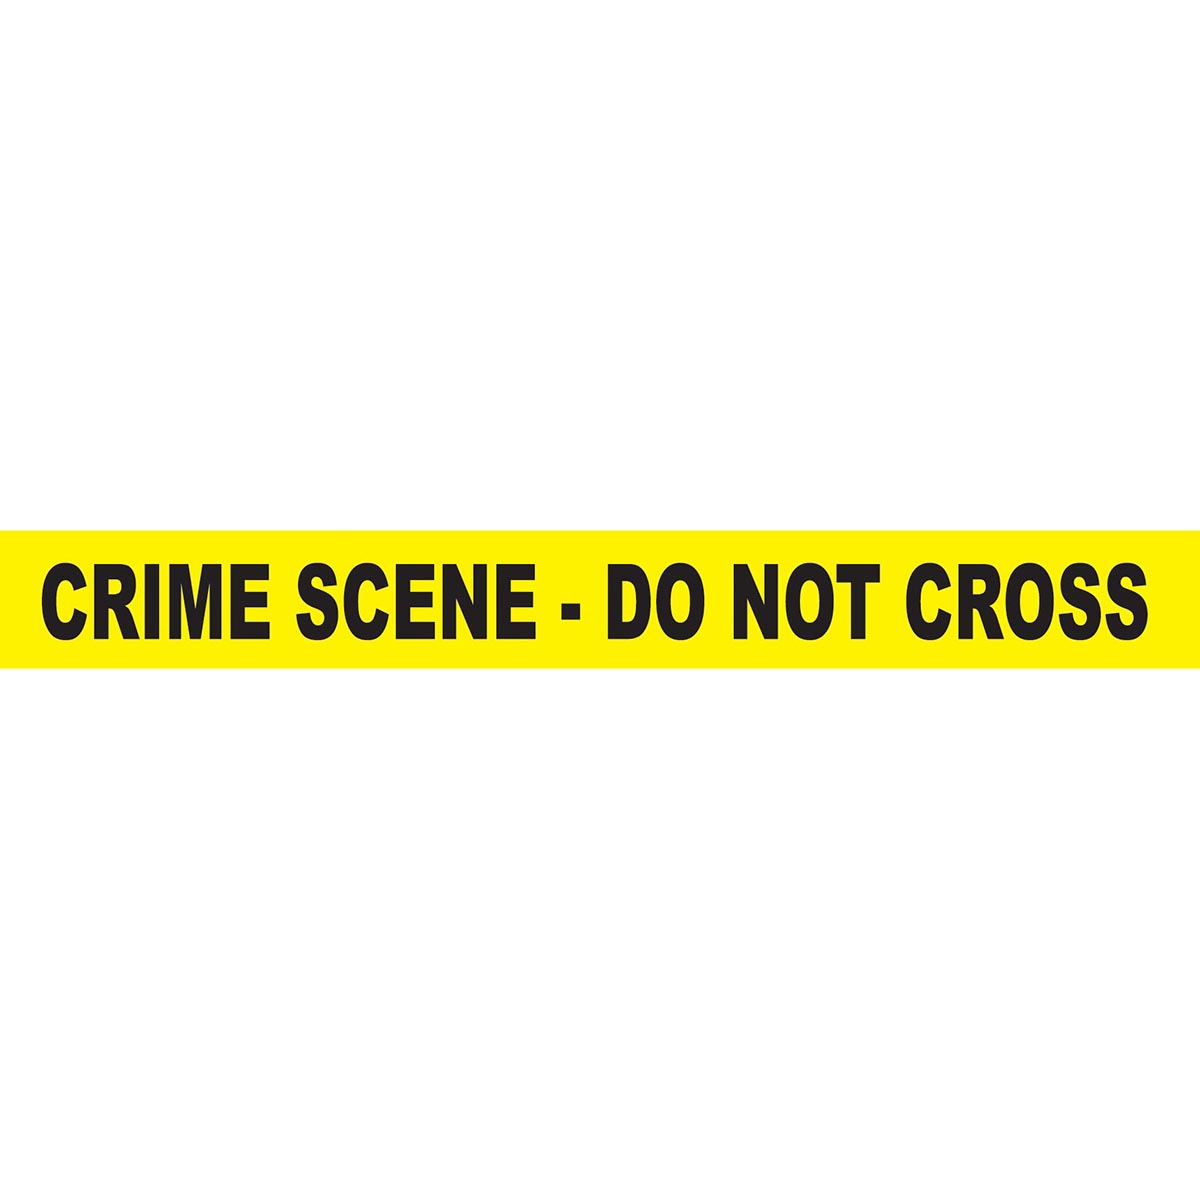 Crime Scene Tape Geek Gifts Science Gifts : W646500112001200Crime Scene Tape Do Not Cross from www.a3bs.com size 1200 x 1200 jpeg 85kB